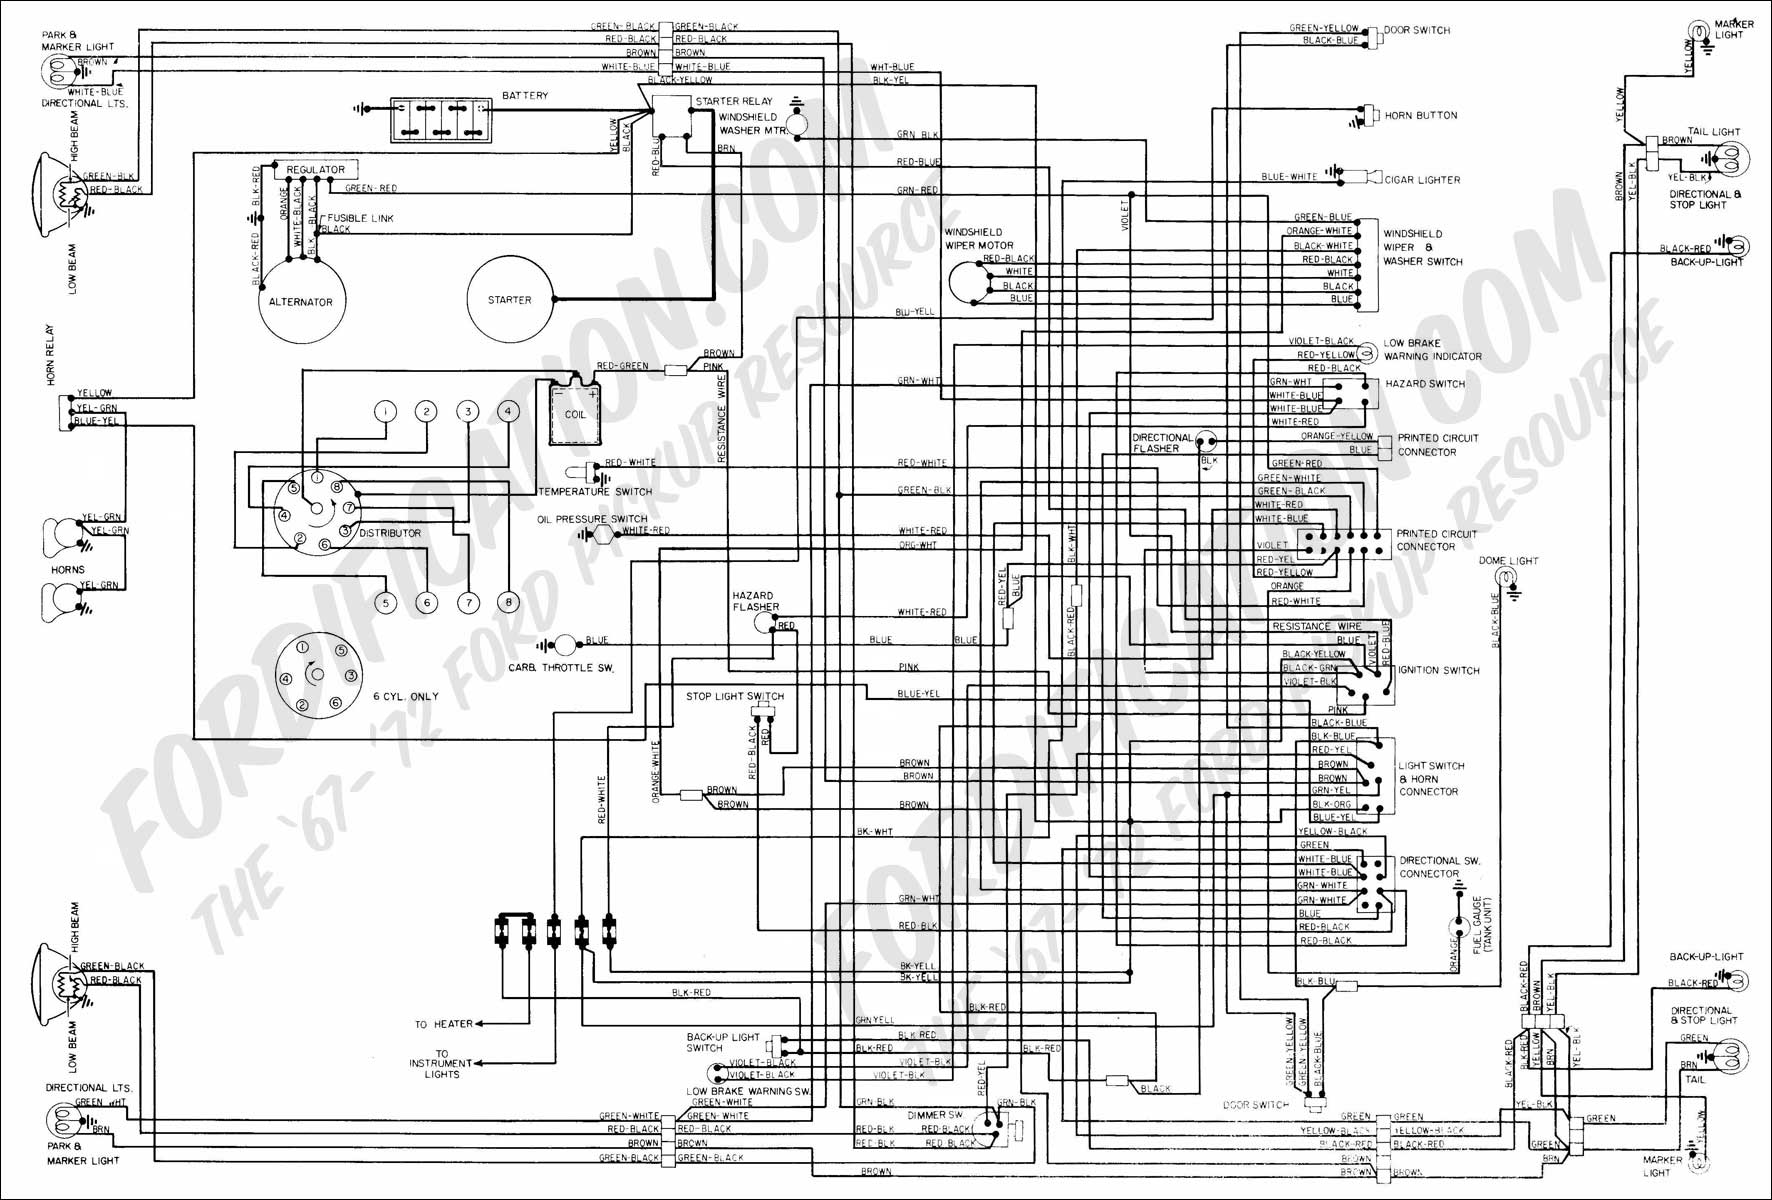 1990 Ford F150 Ignition Switch Wiring Diagram from www.fordification.com